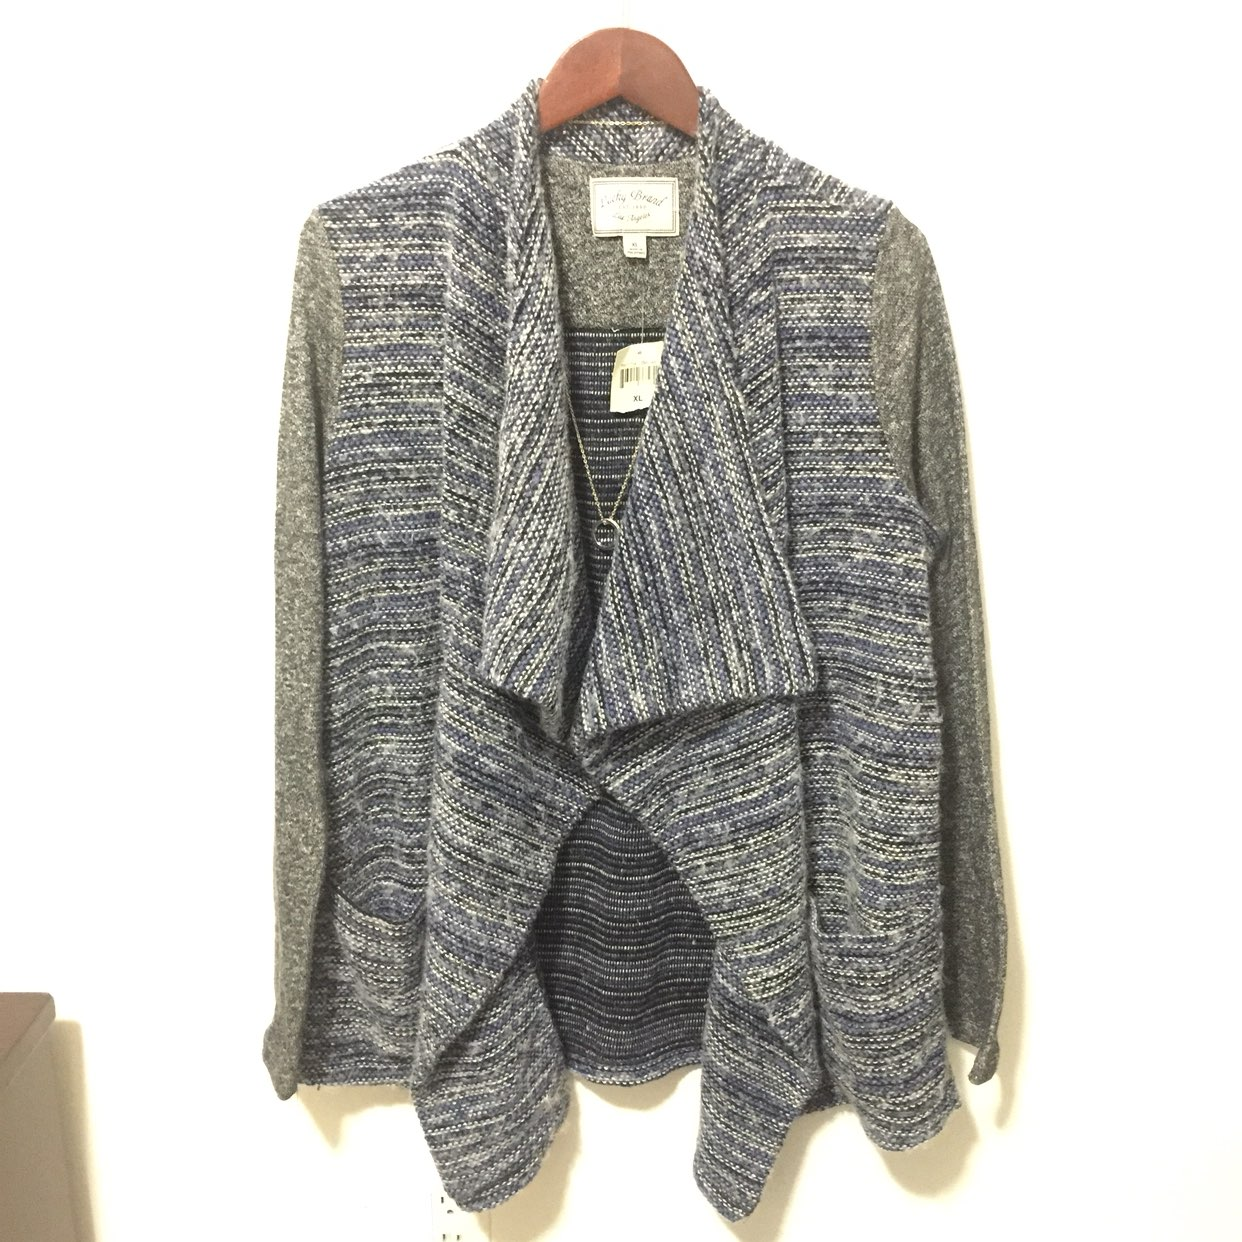 NWT LUCKY BRAND WATERFALL CARDIGAN - Mercari: BUY & SELL THINGS ...